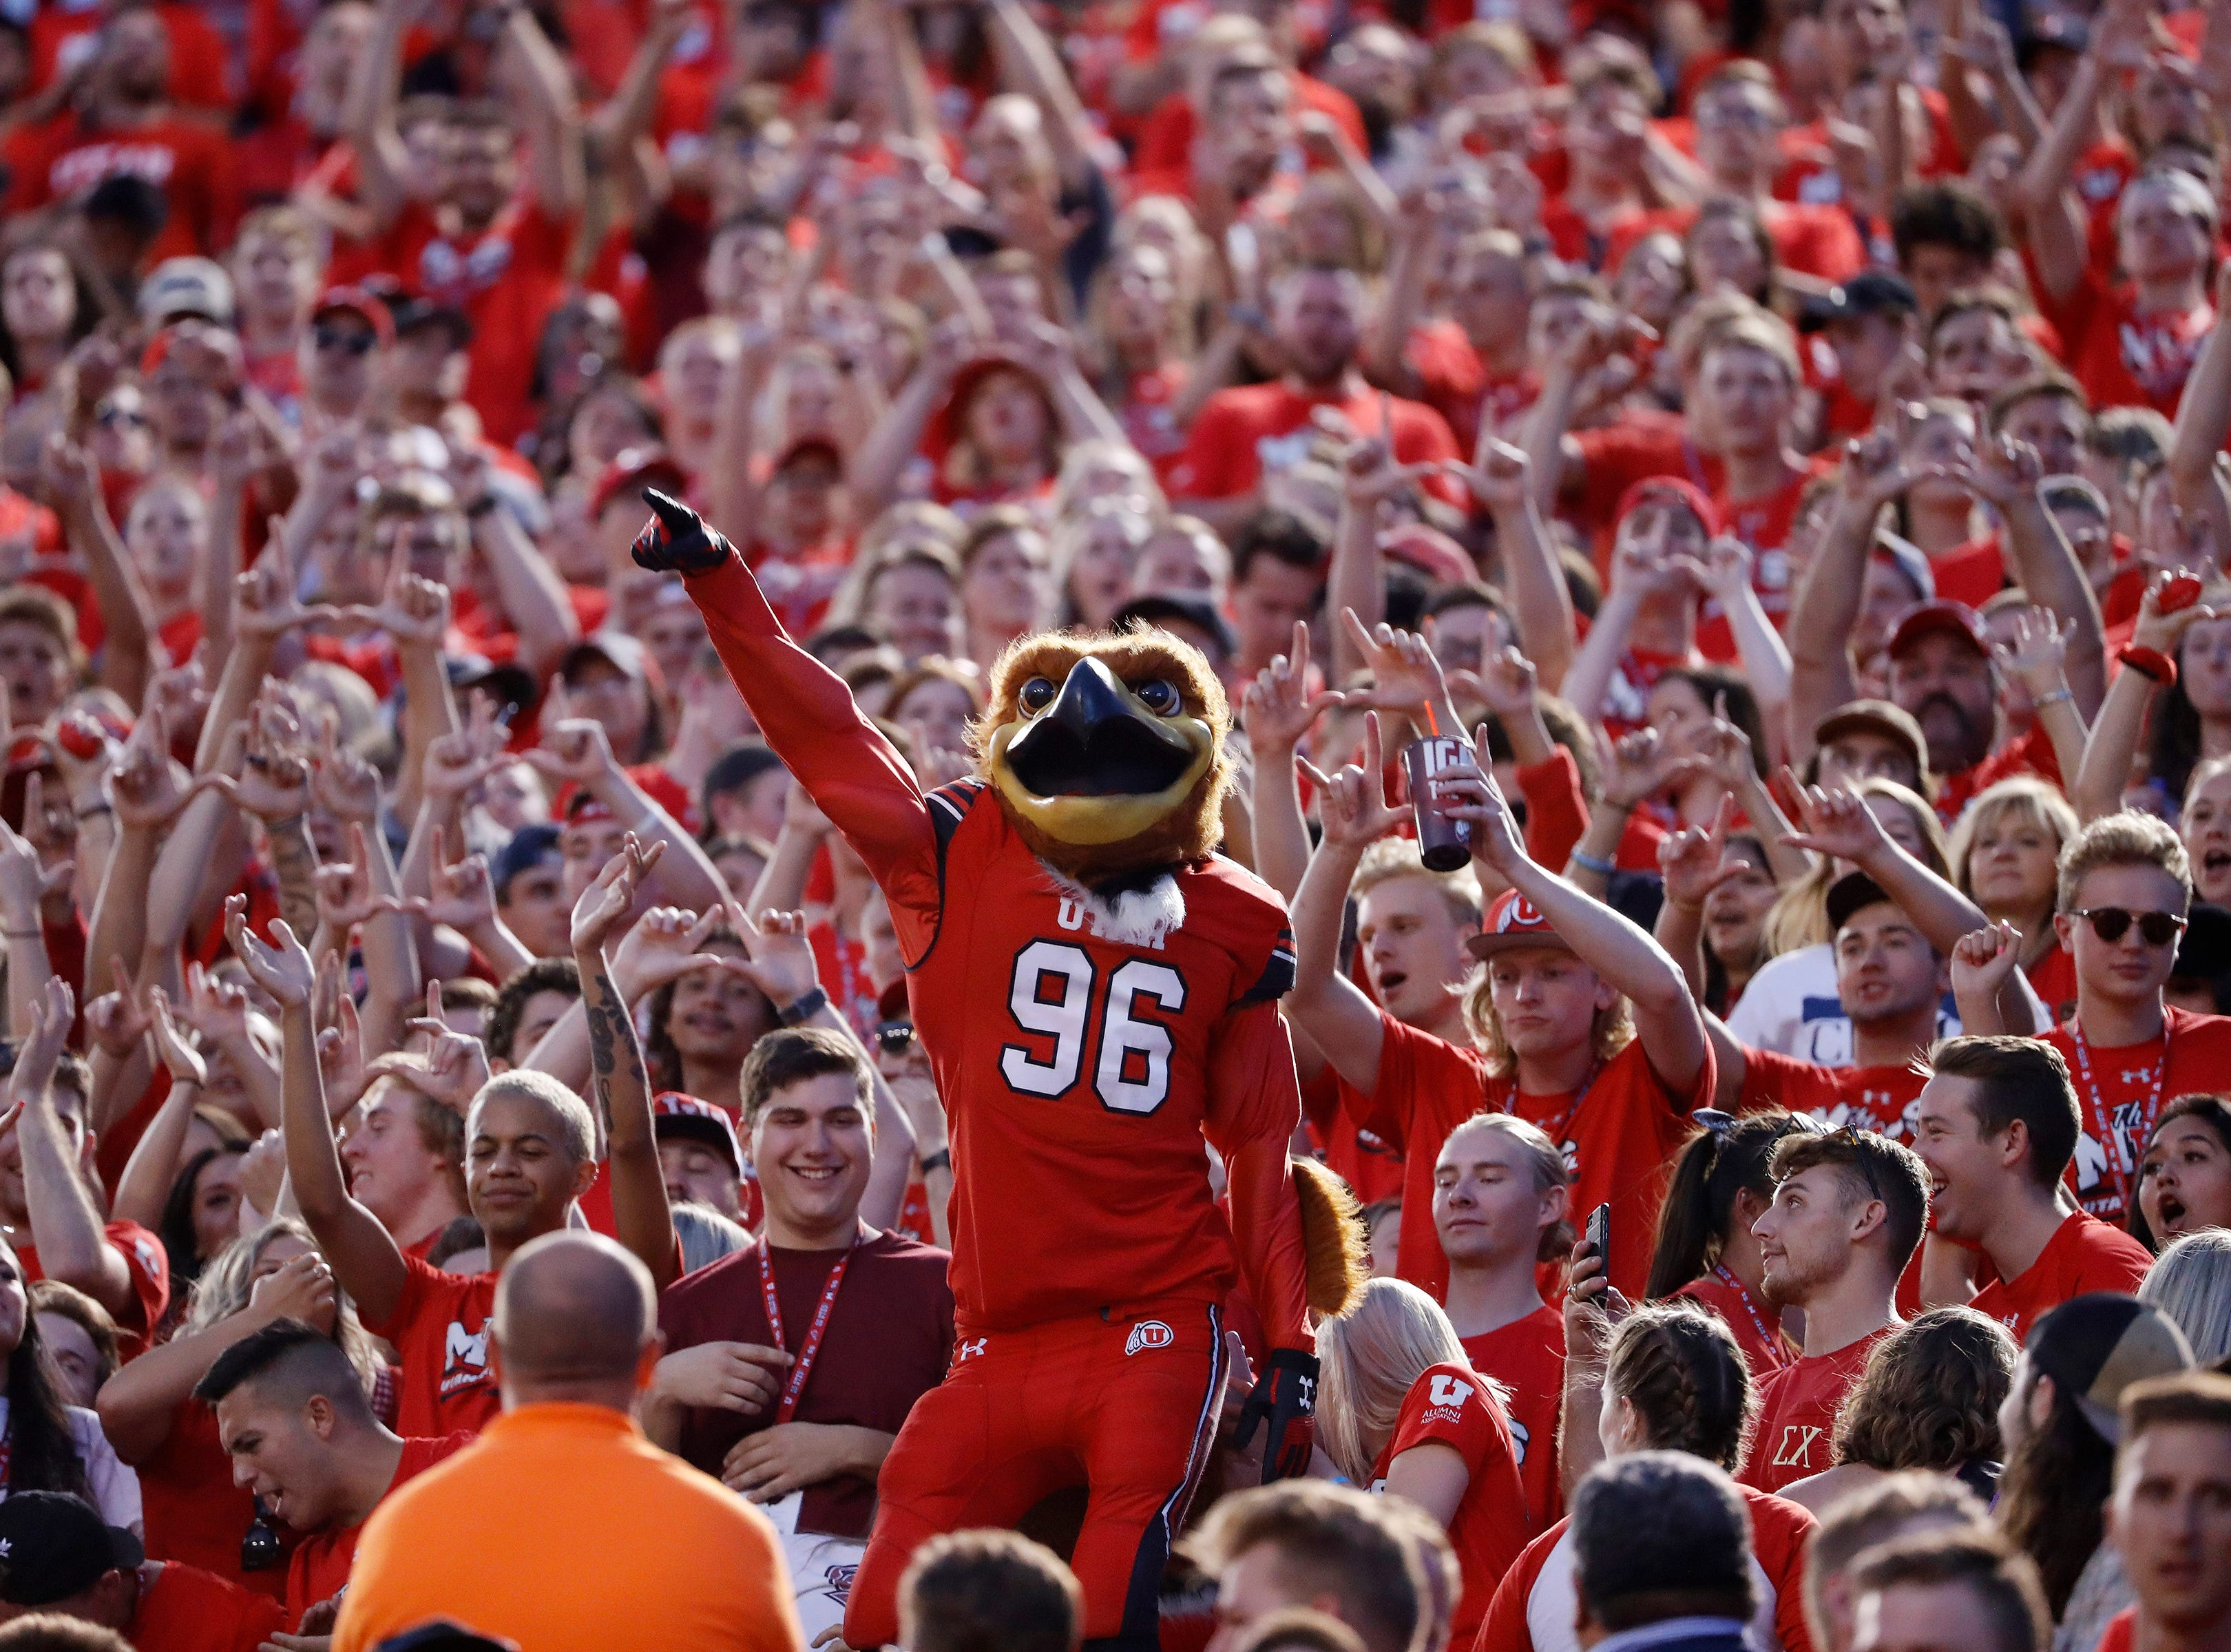 Week 1: The Utah Utes mascot Swoop shows his spirit along with fans against the Weber State Wildcats at Rice-Eccles Stadium.